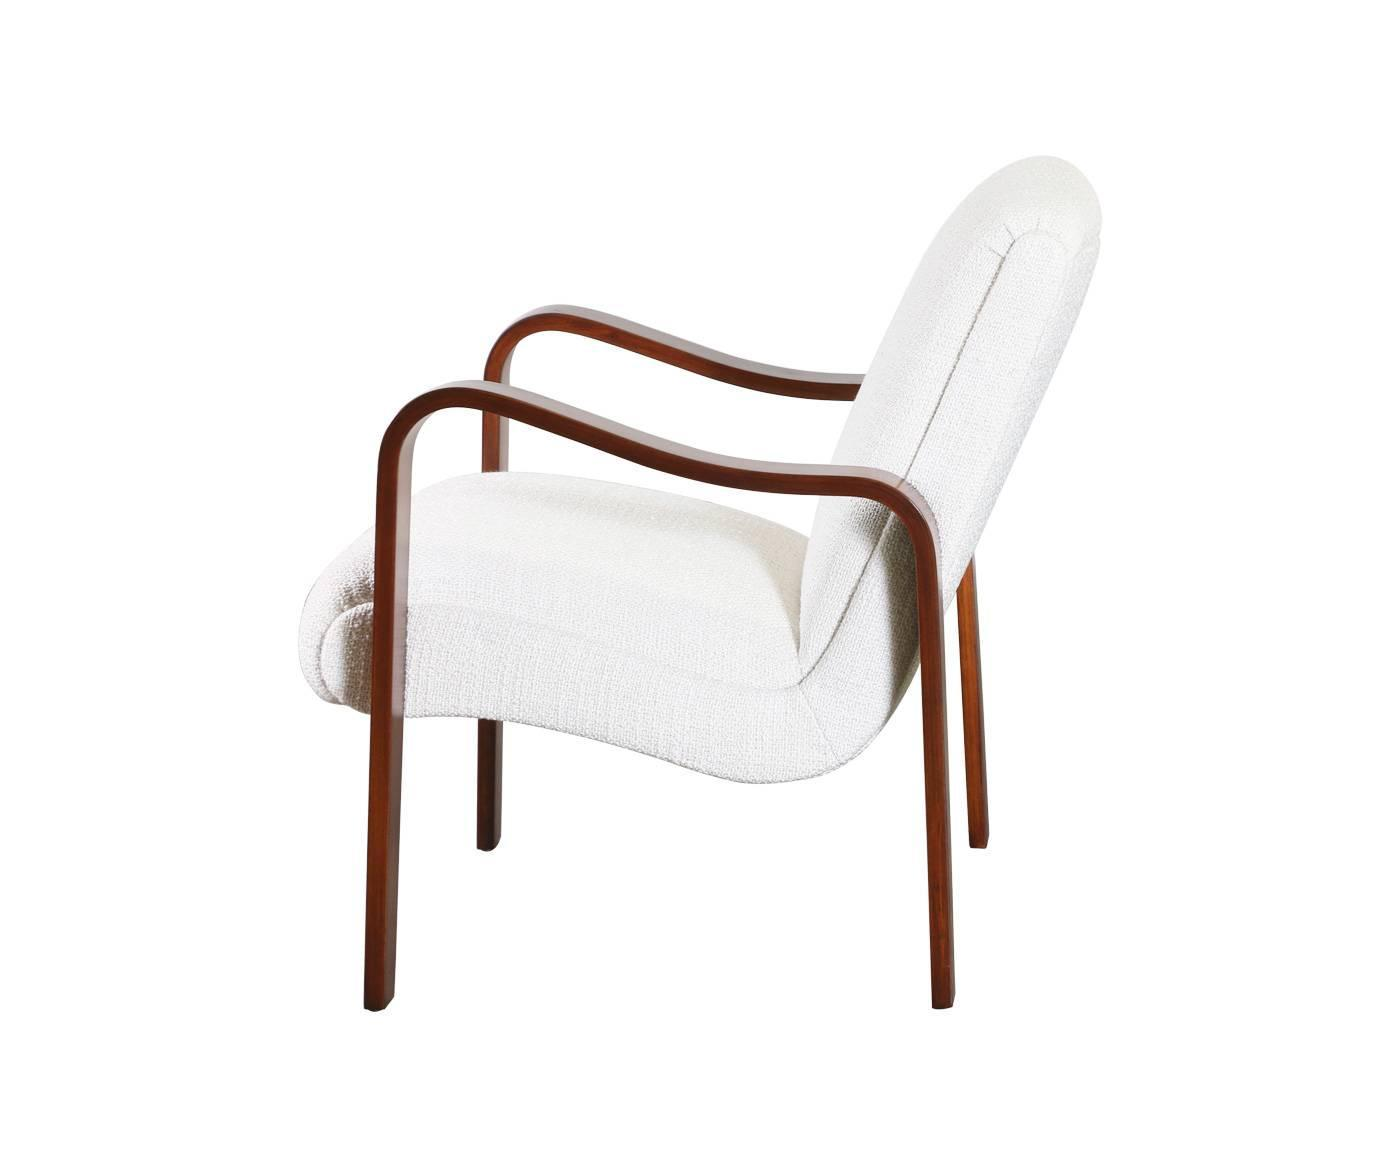 Midcentury Bentwood Lounge Chairs By Thonet For Sale At 1stdibs